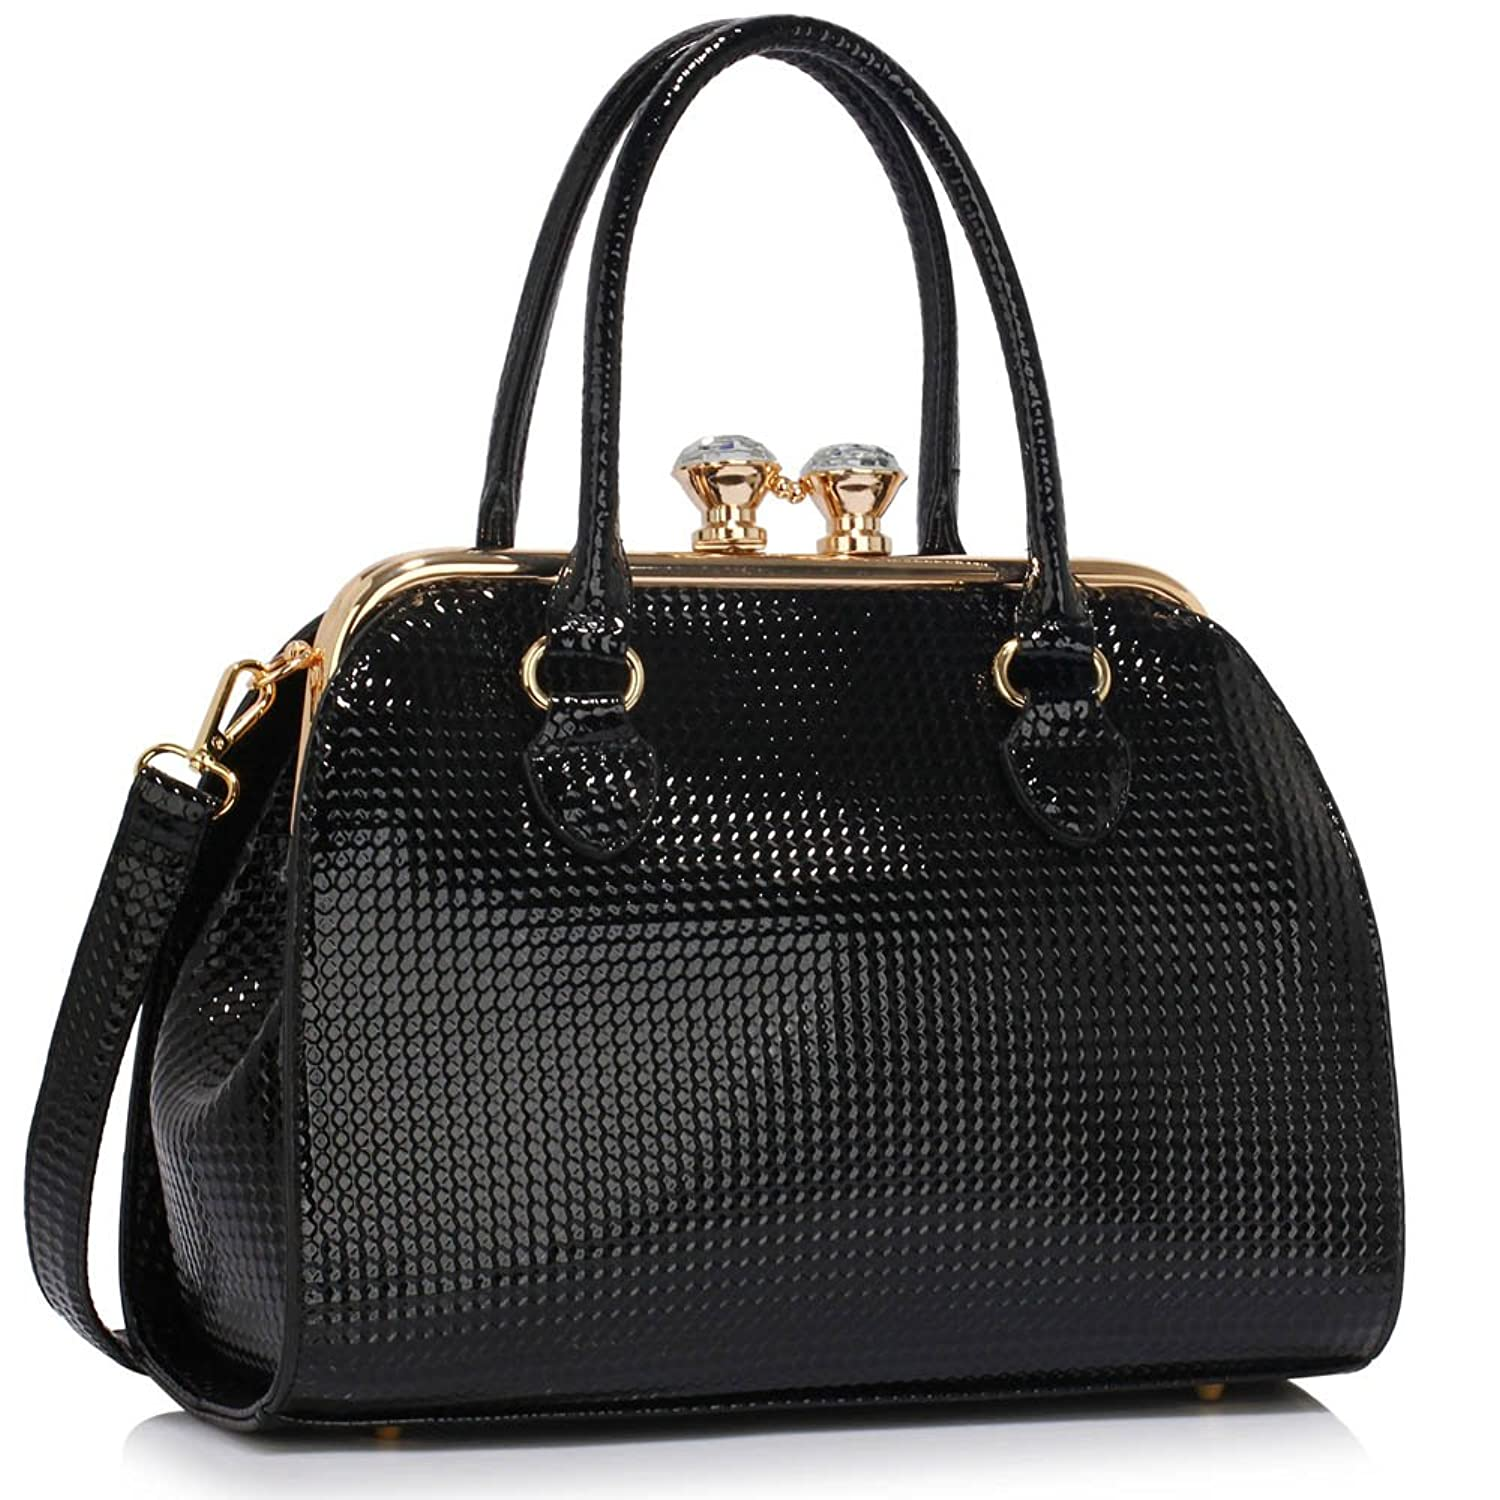 New Womens Designer Bags Ladies Fashion Handbags Tote Patent ...